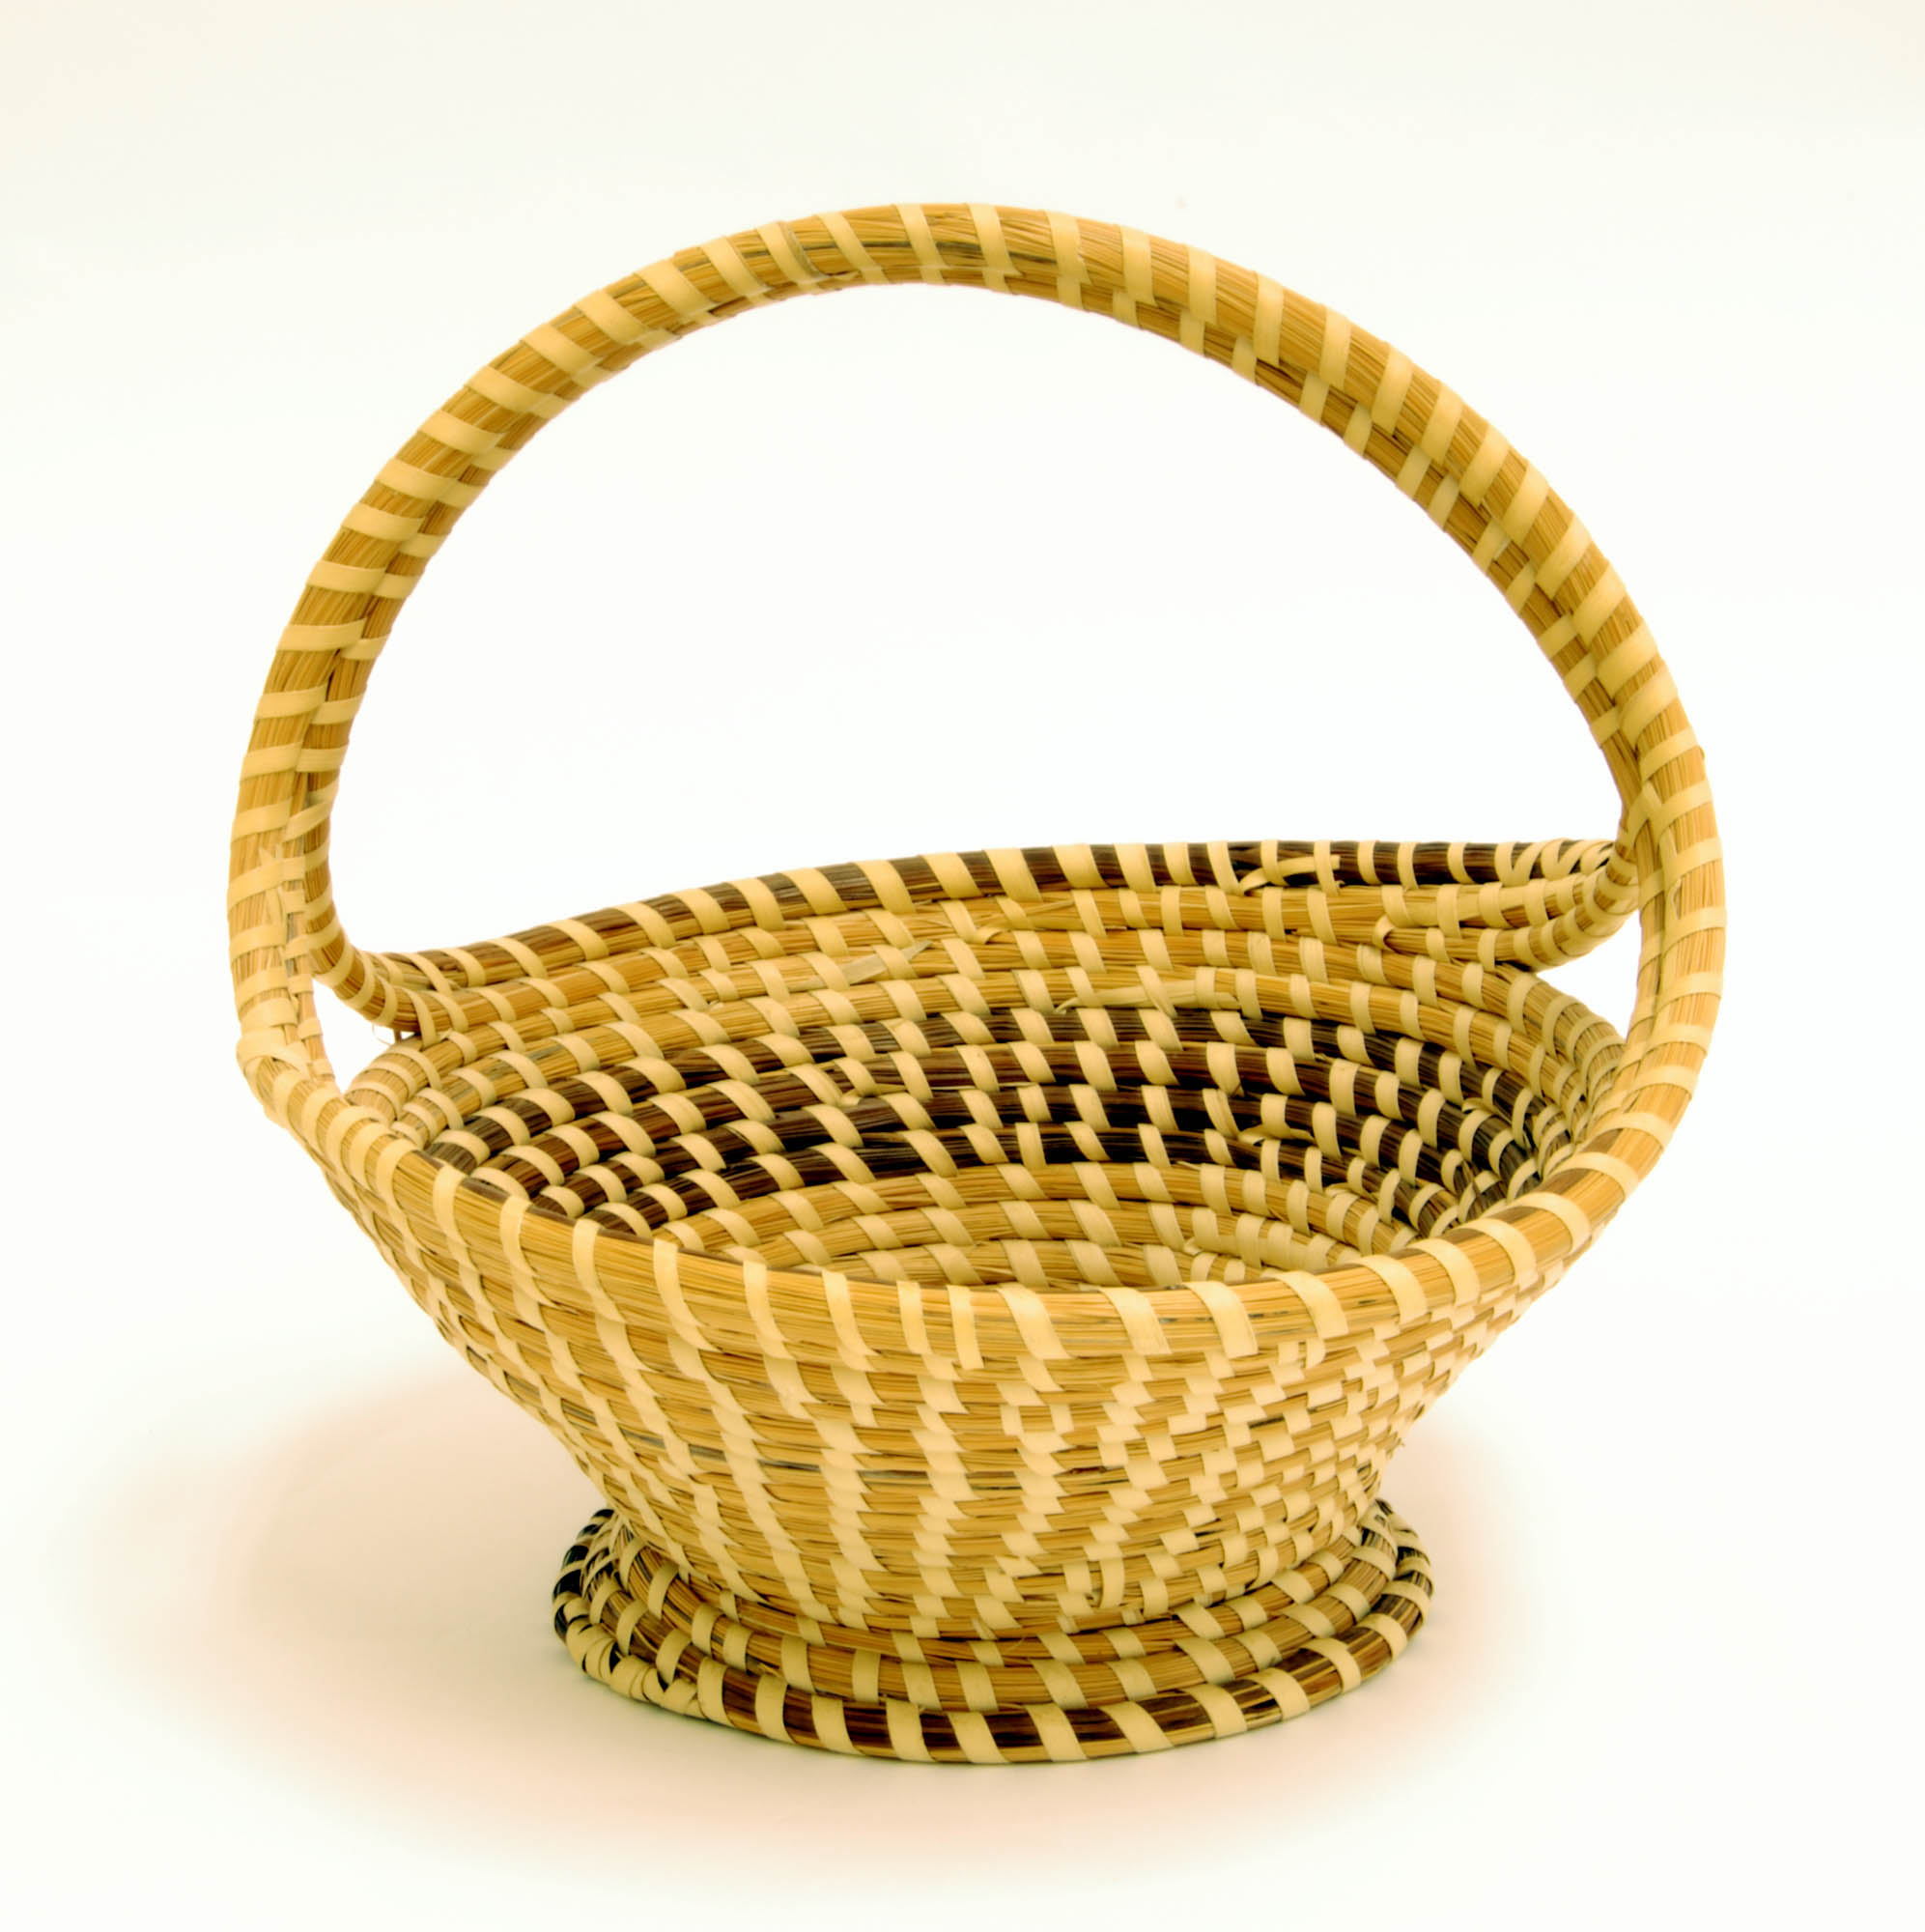 Traditional sweetgrass fruit basket with handle